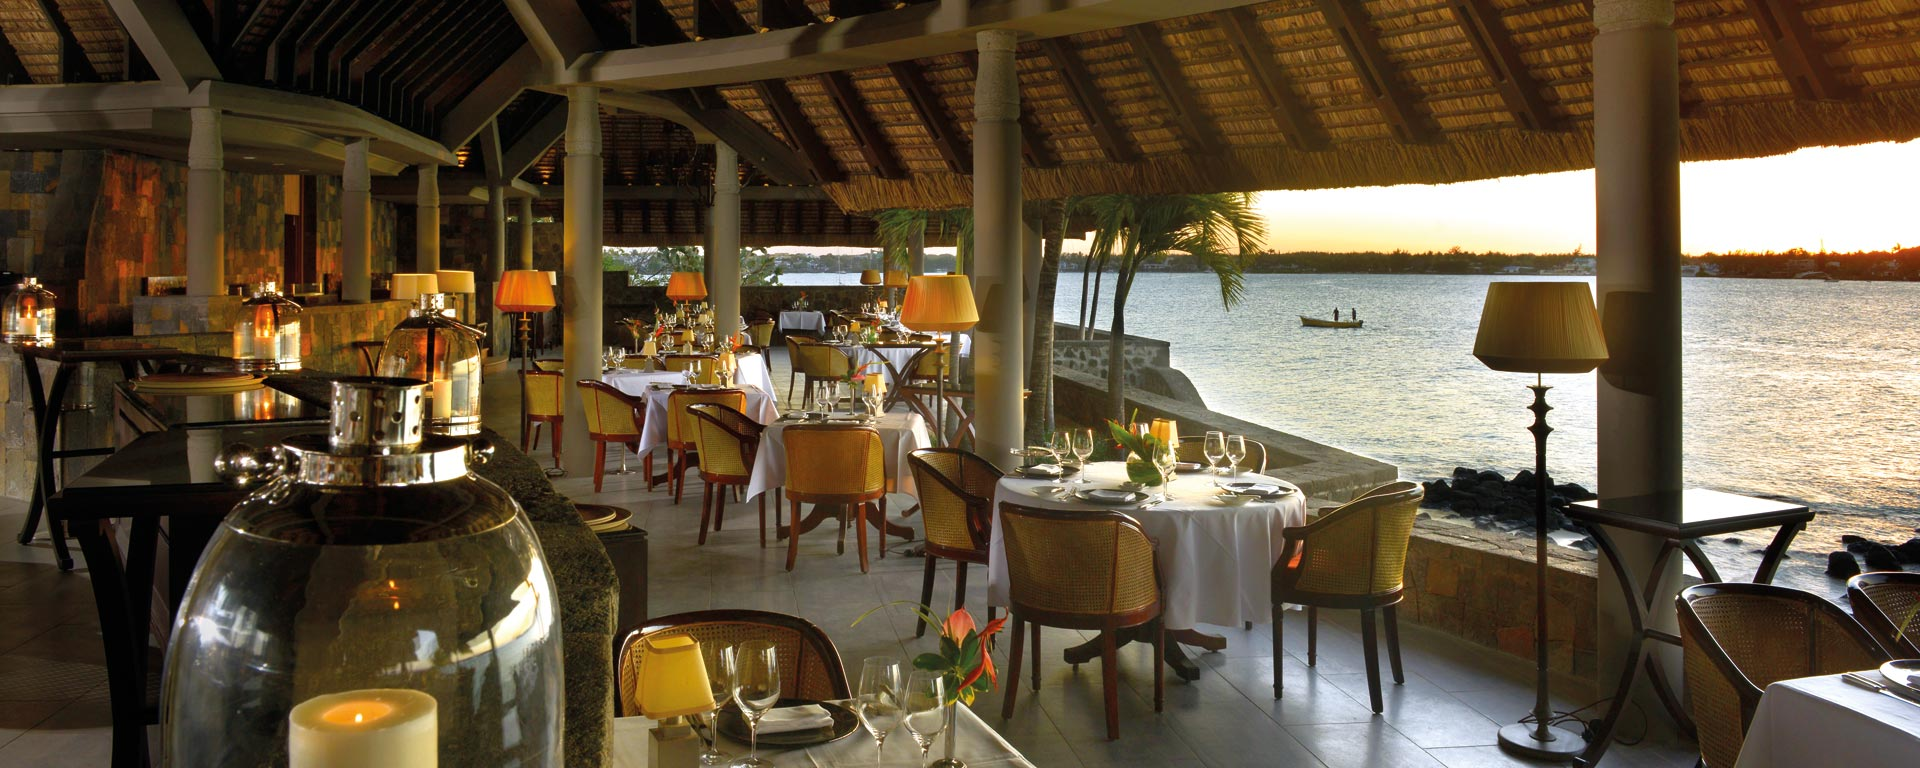 Experience the finest cuisine in Mauritius